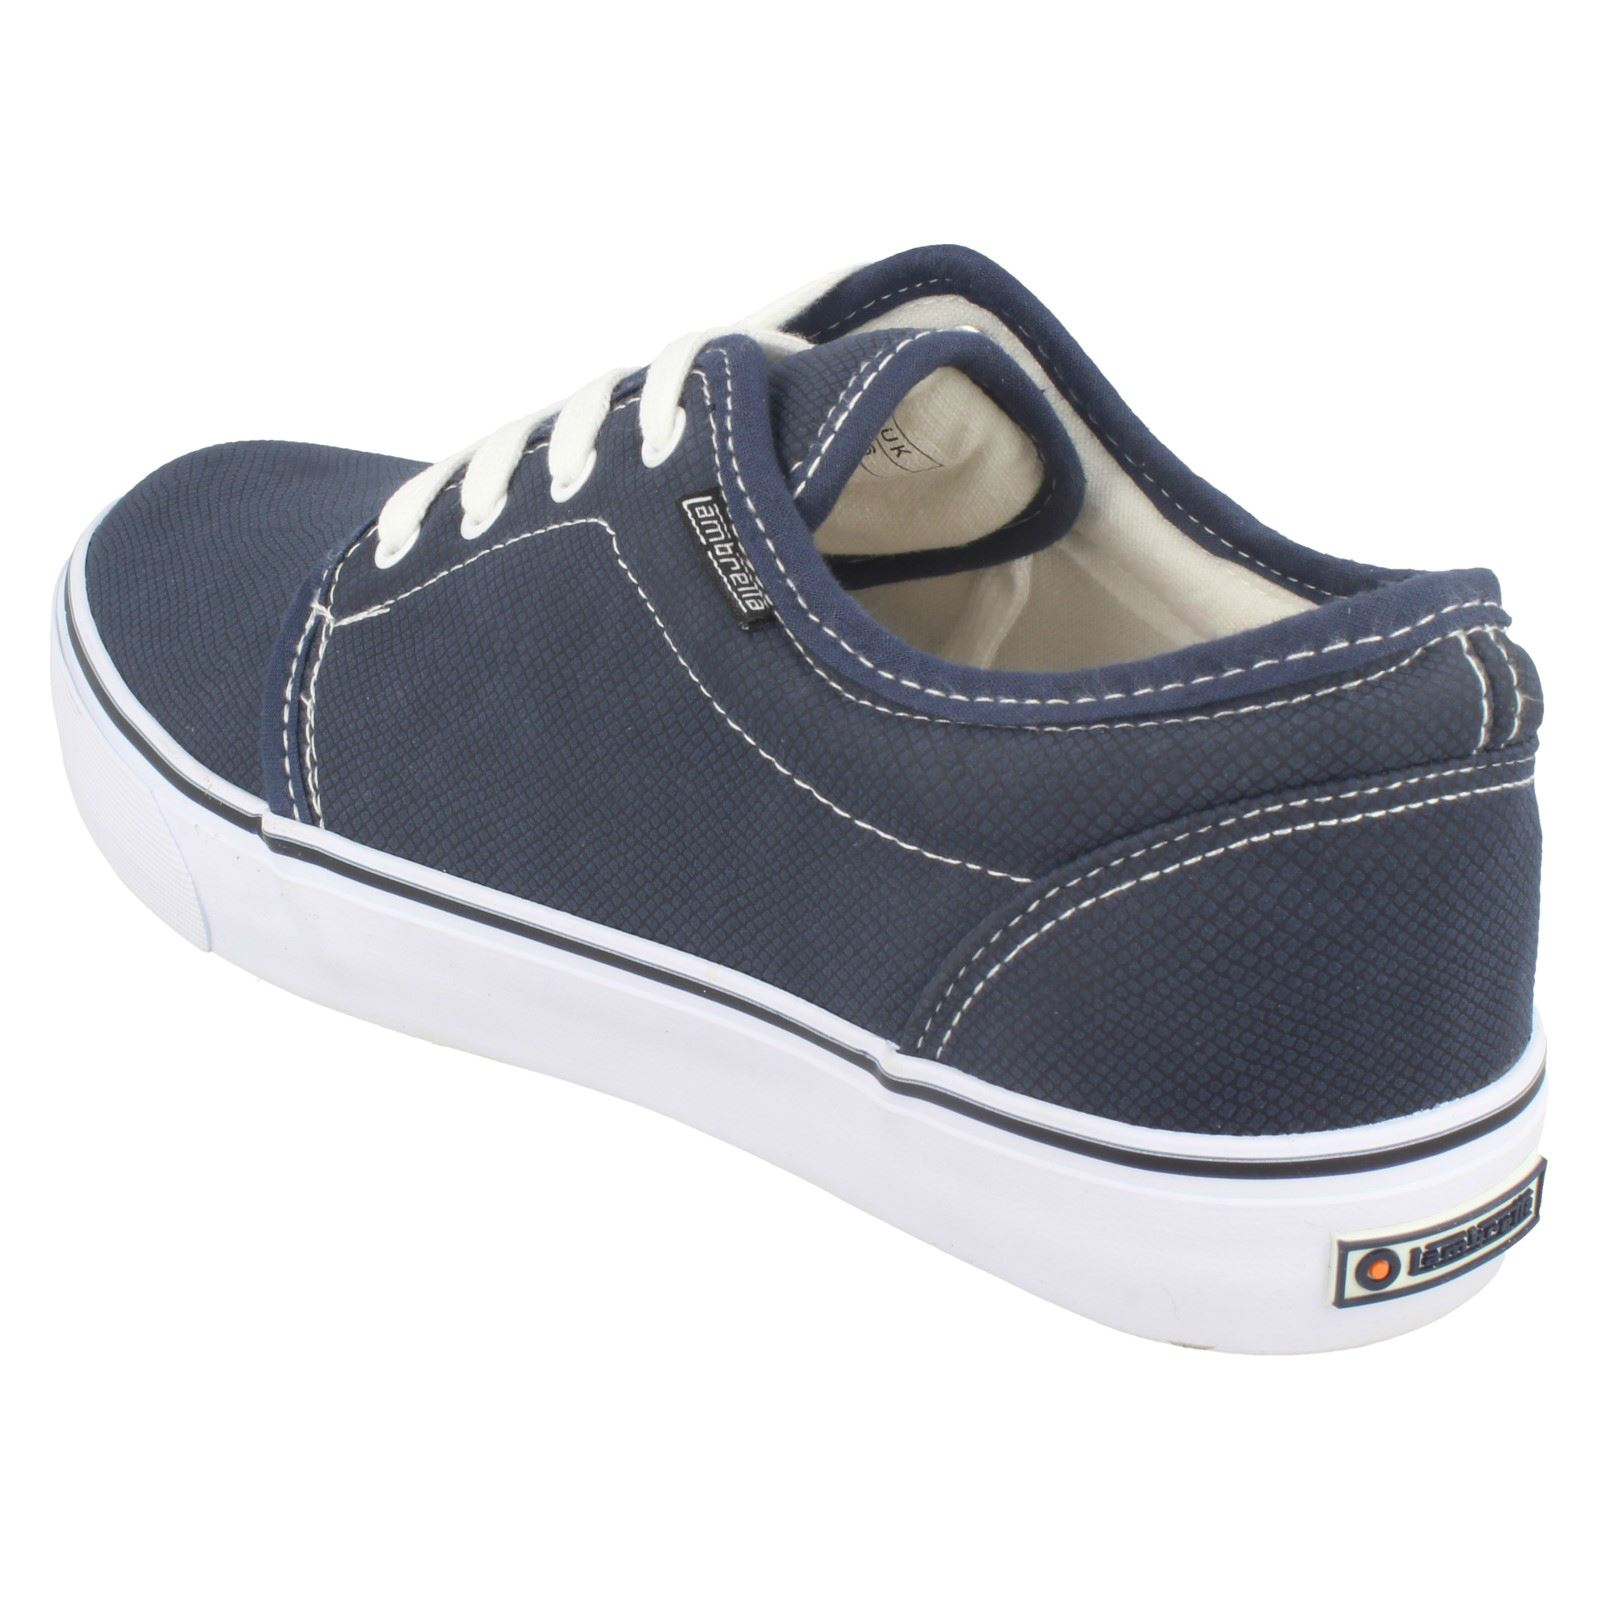 Mens Kids Lambretta Casual Textured Upper Rounded Toe Lace Up Shoes - WDY007